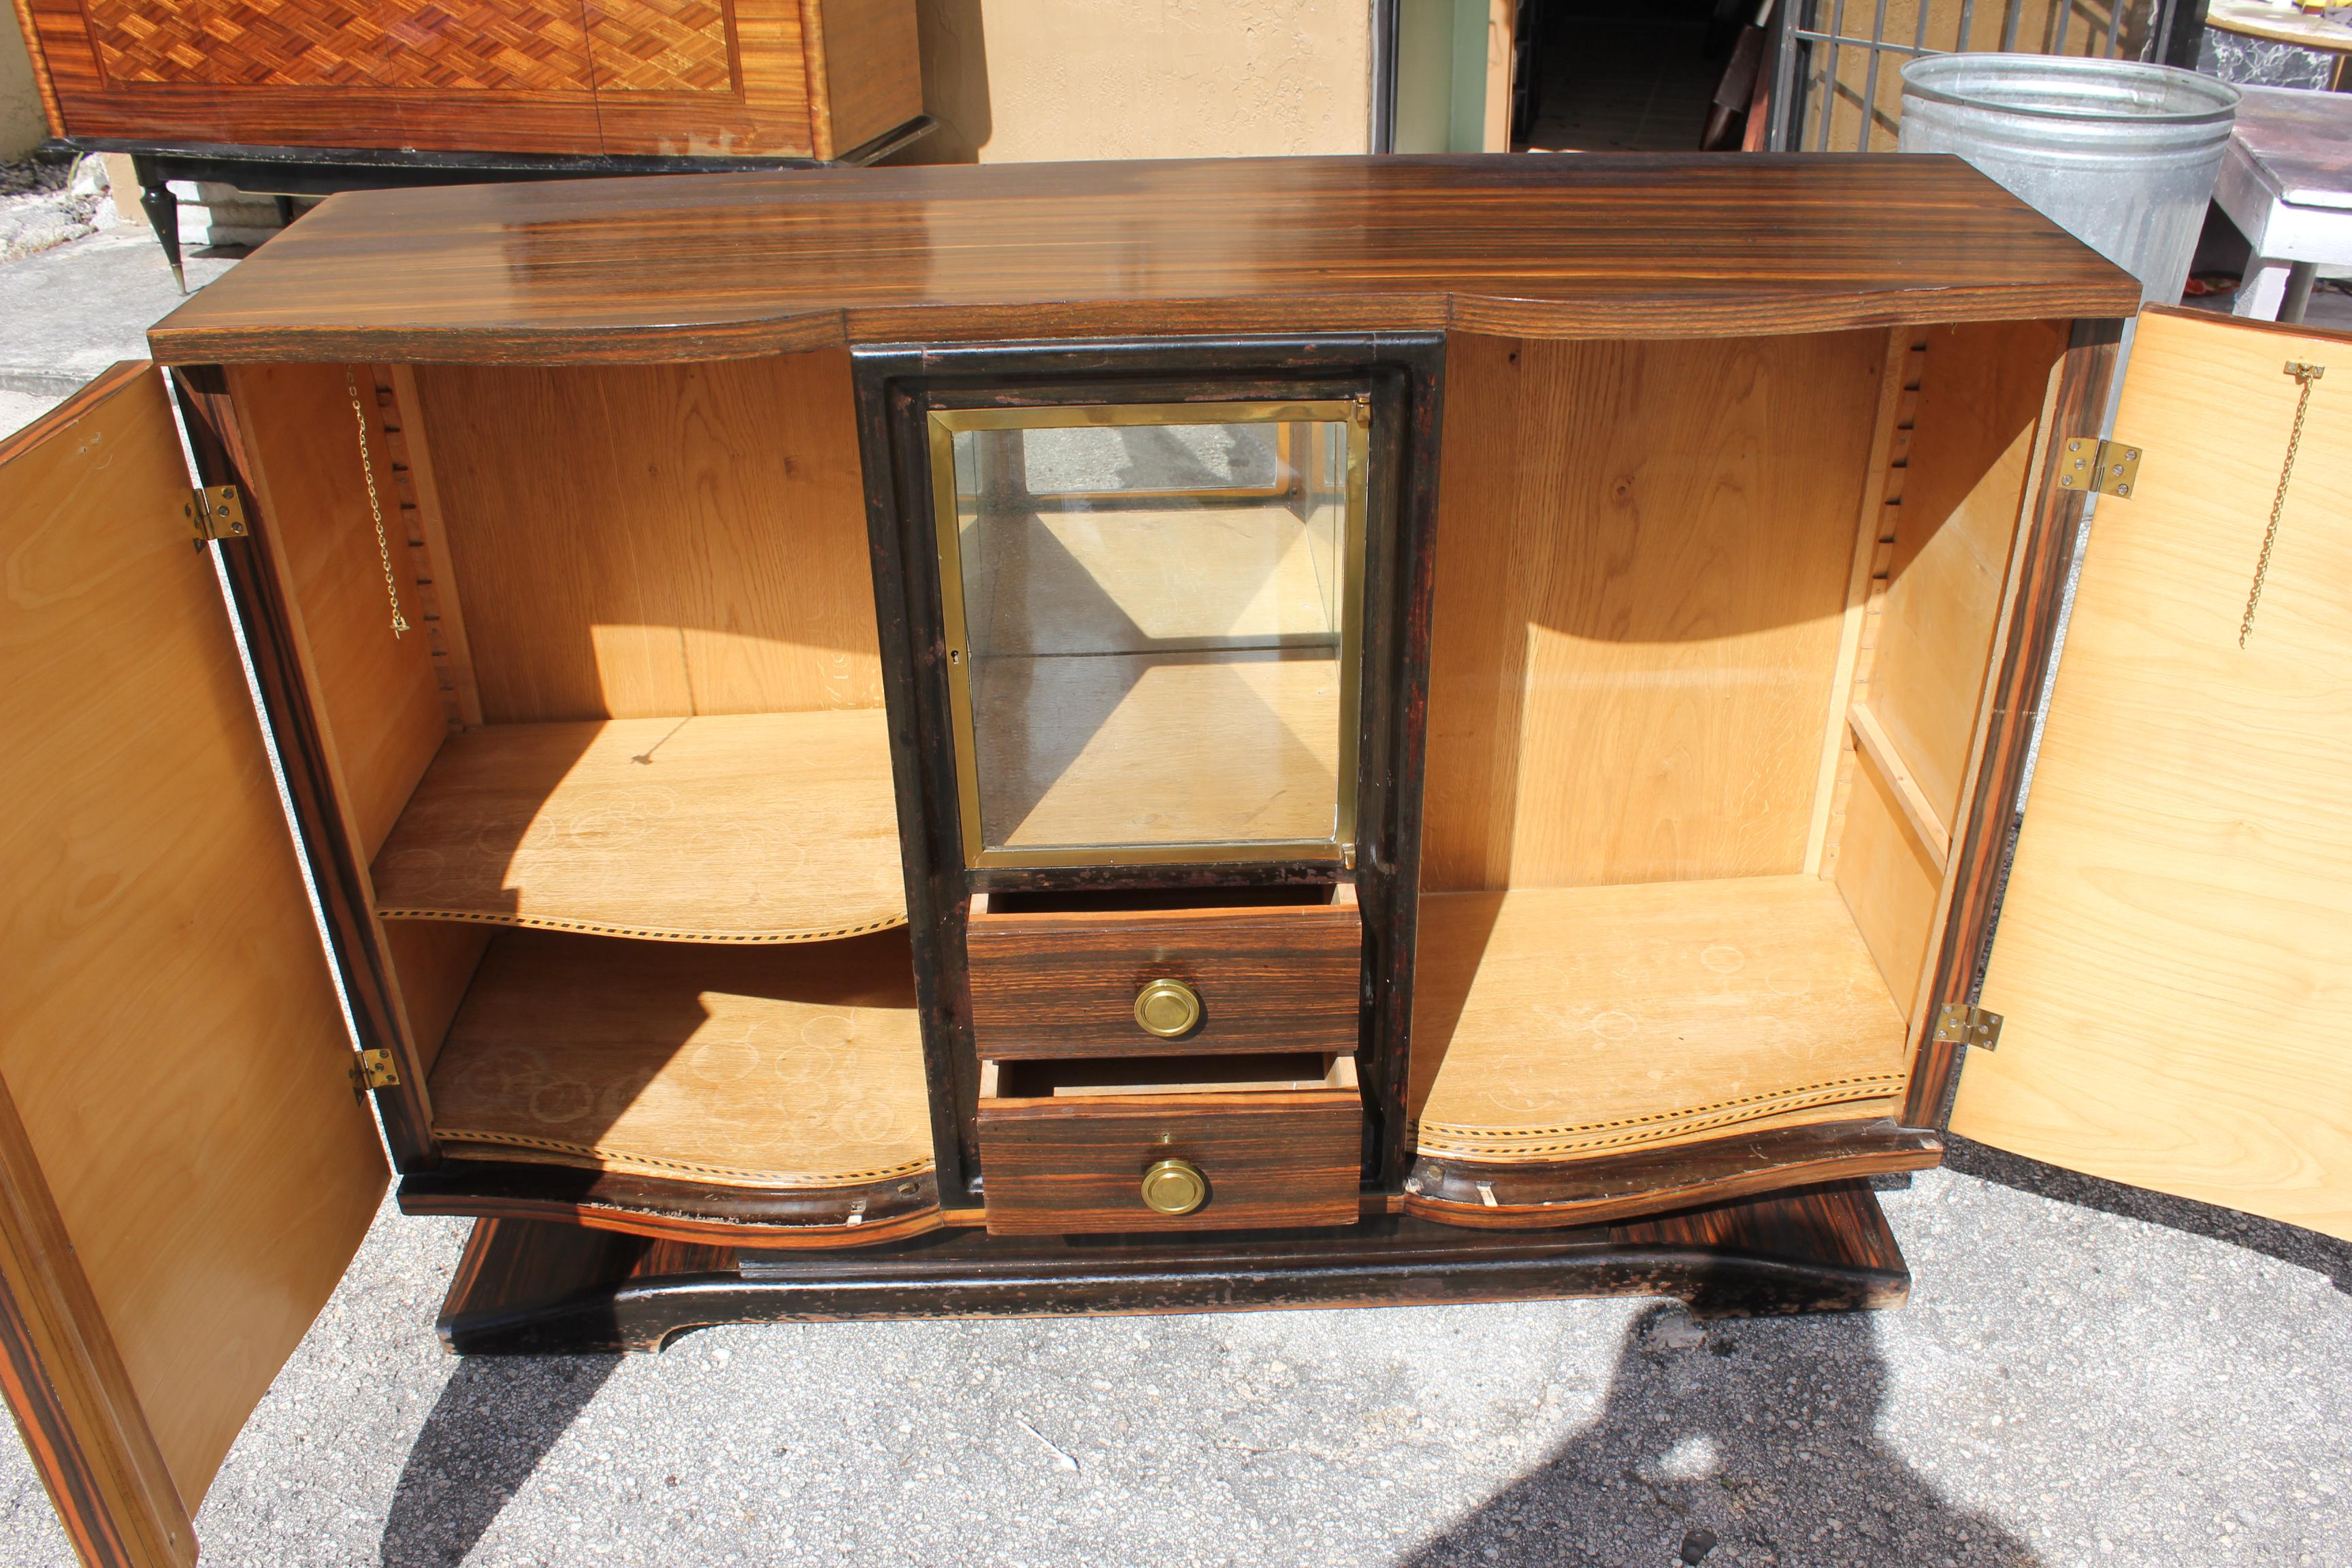 Elegant Maurice Rinck French Art Deco Macassar Ebony Sideboard Or